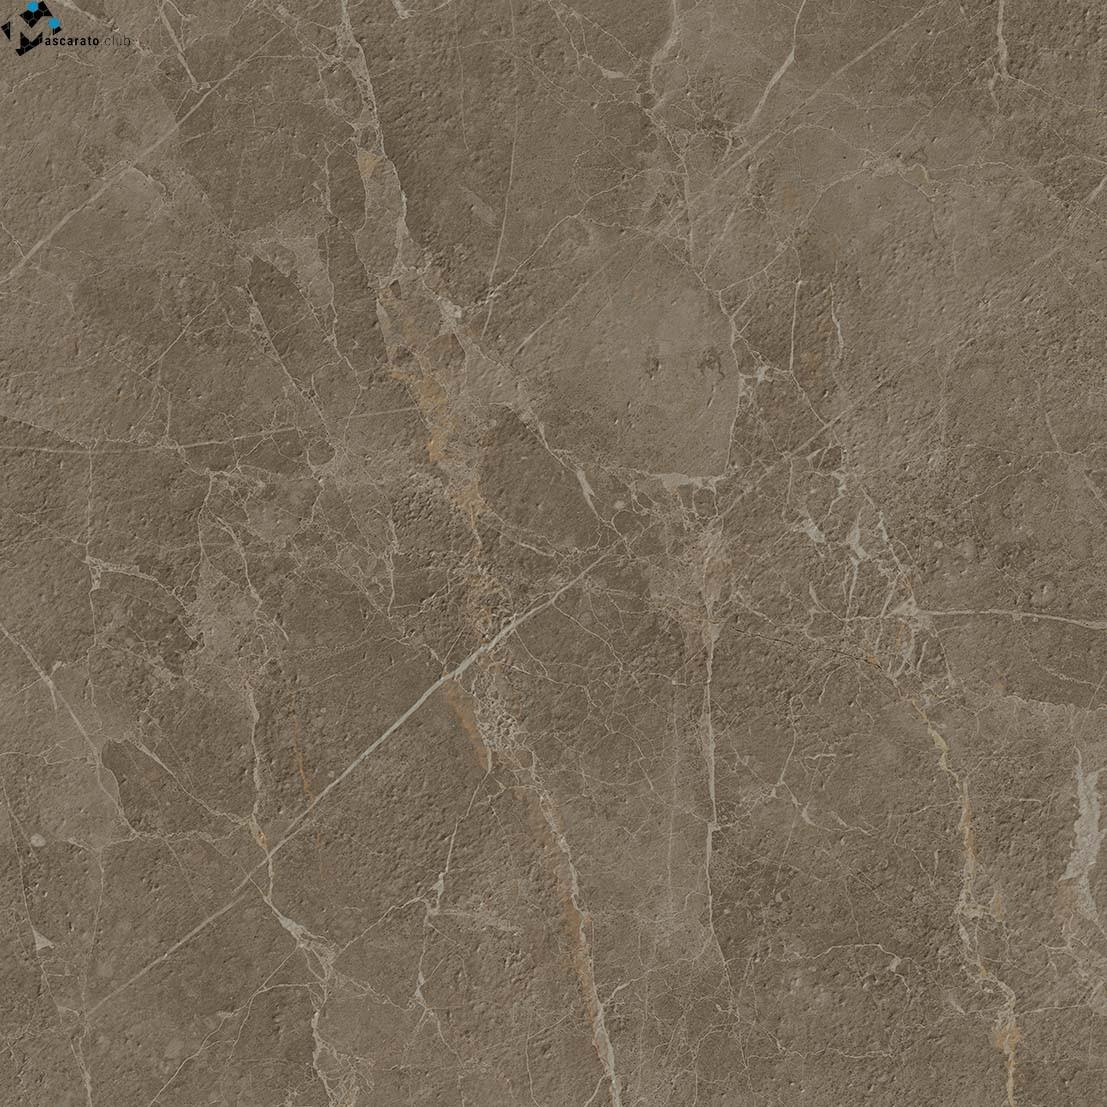 Atlas Concorde Supernova Stone Grey Wax Rett 45x45